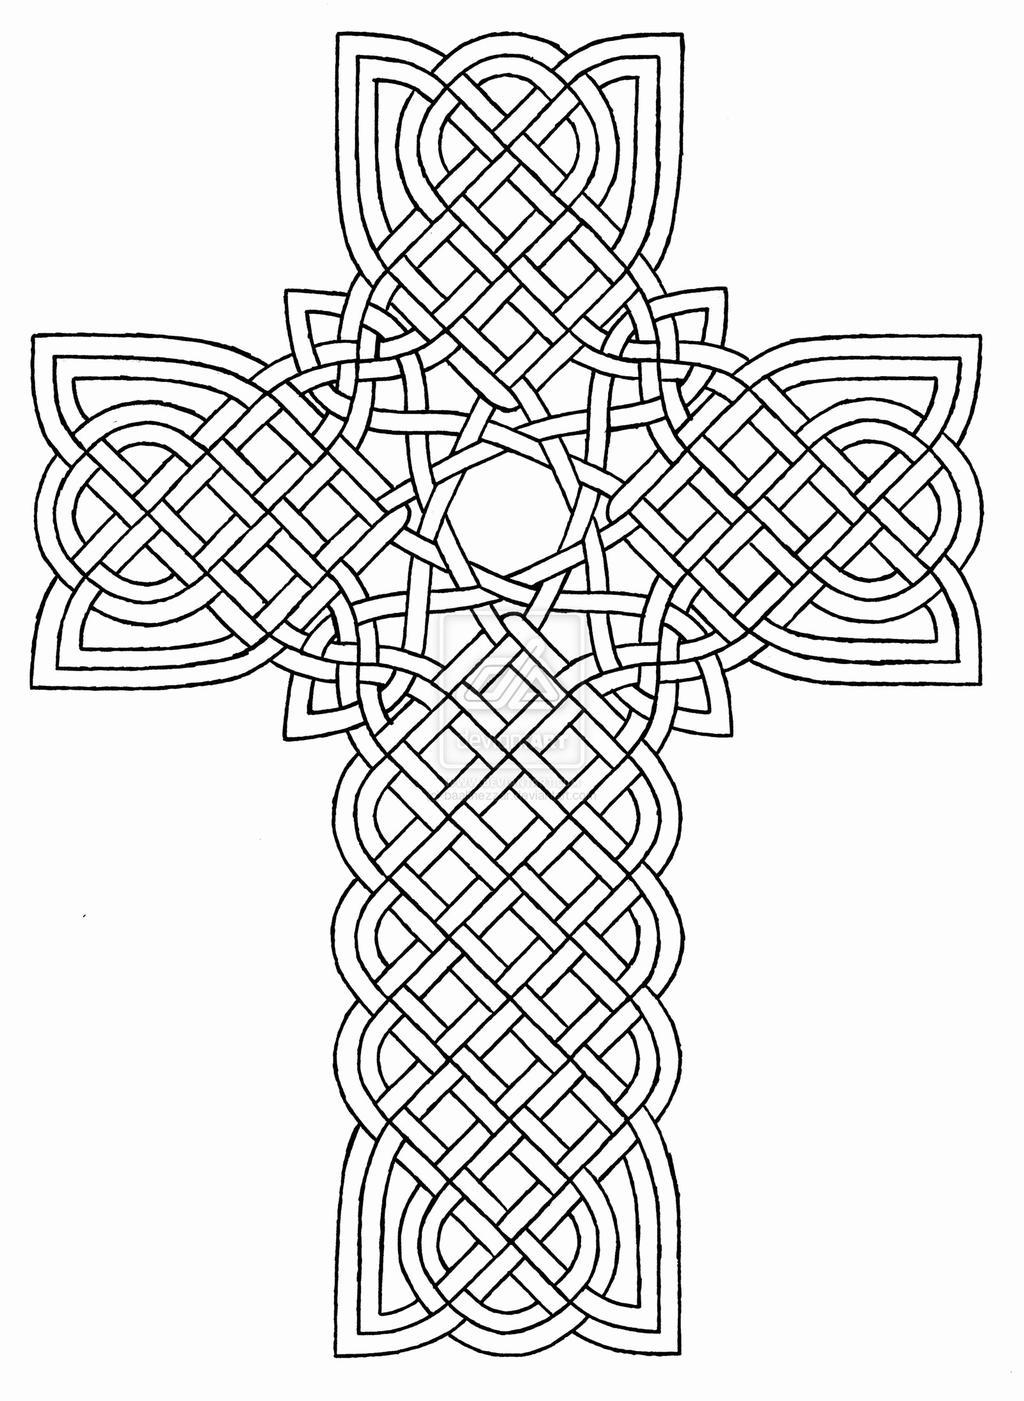 Book Kells Coloring Pages Images - Free Printable Coloring Pages